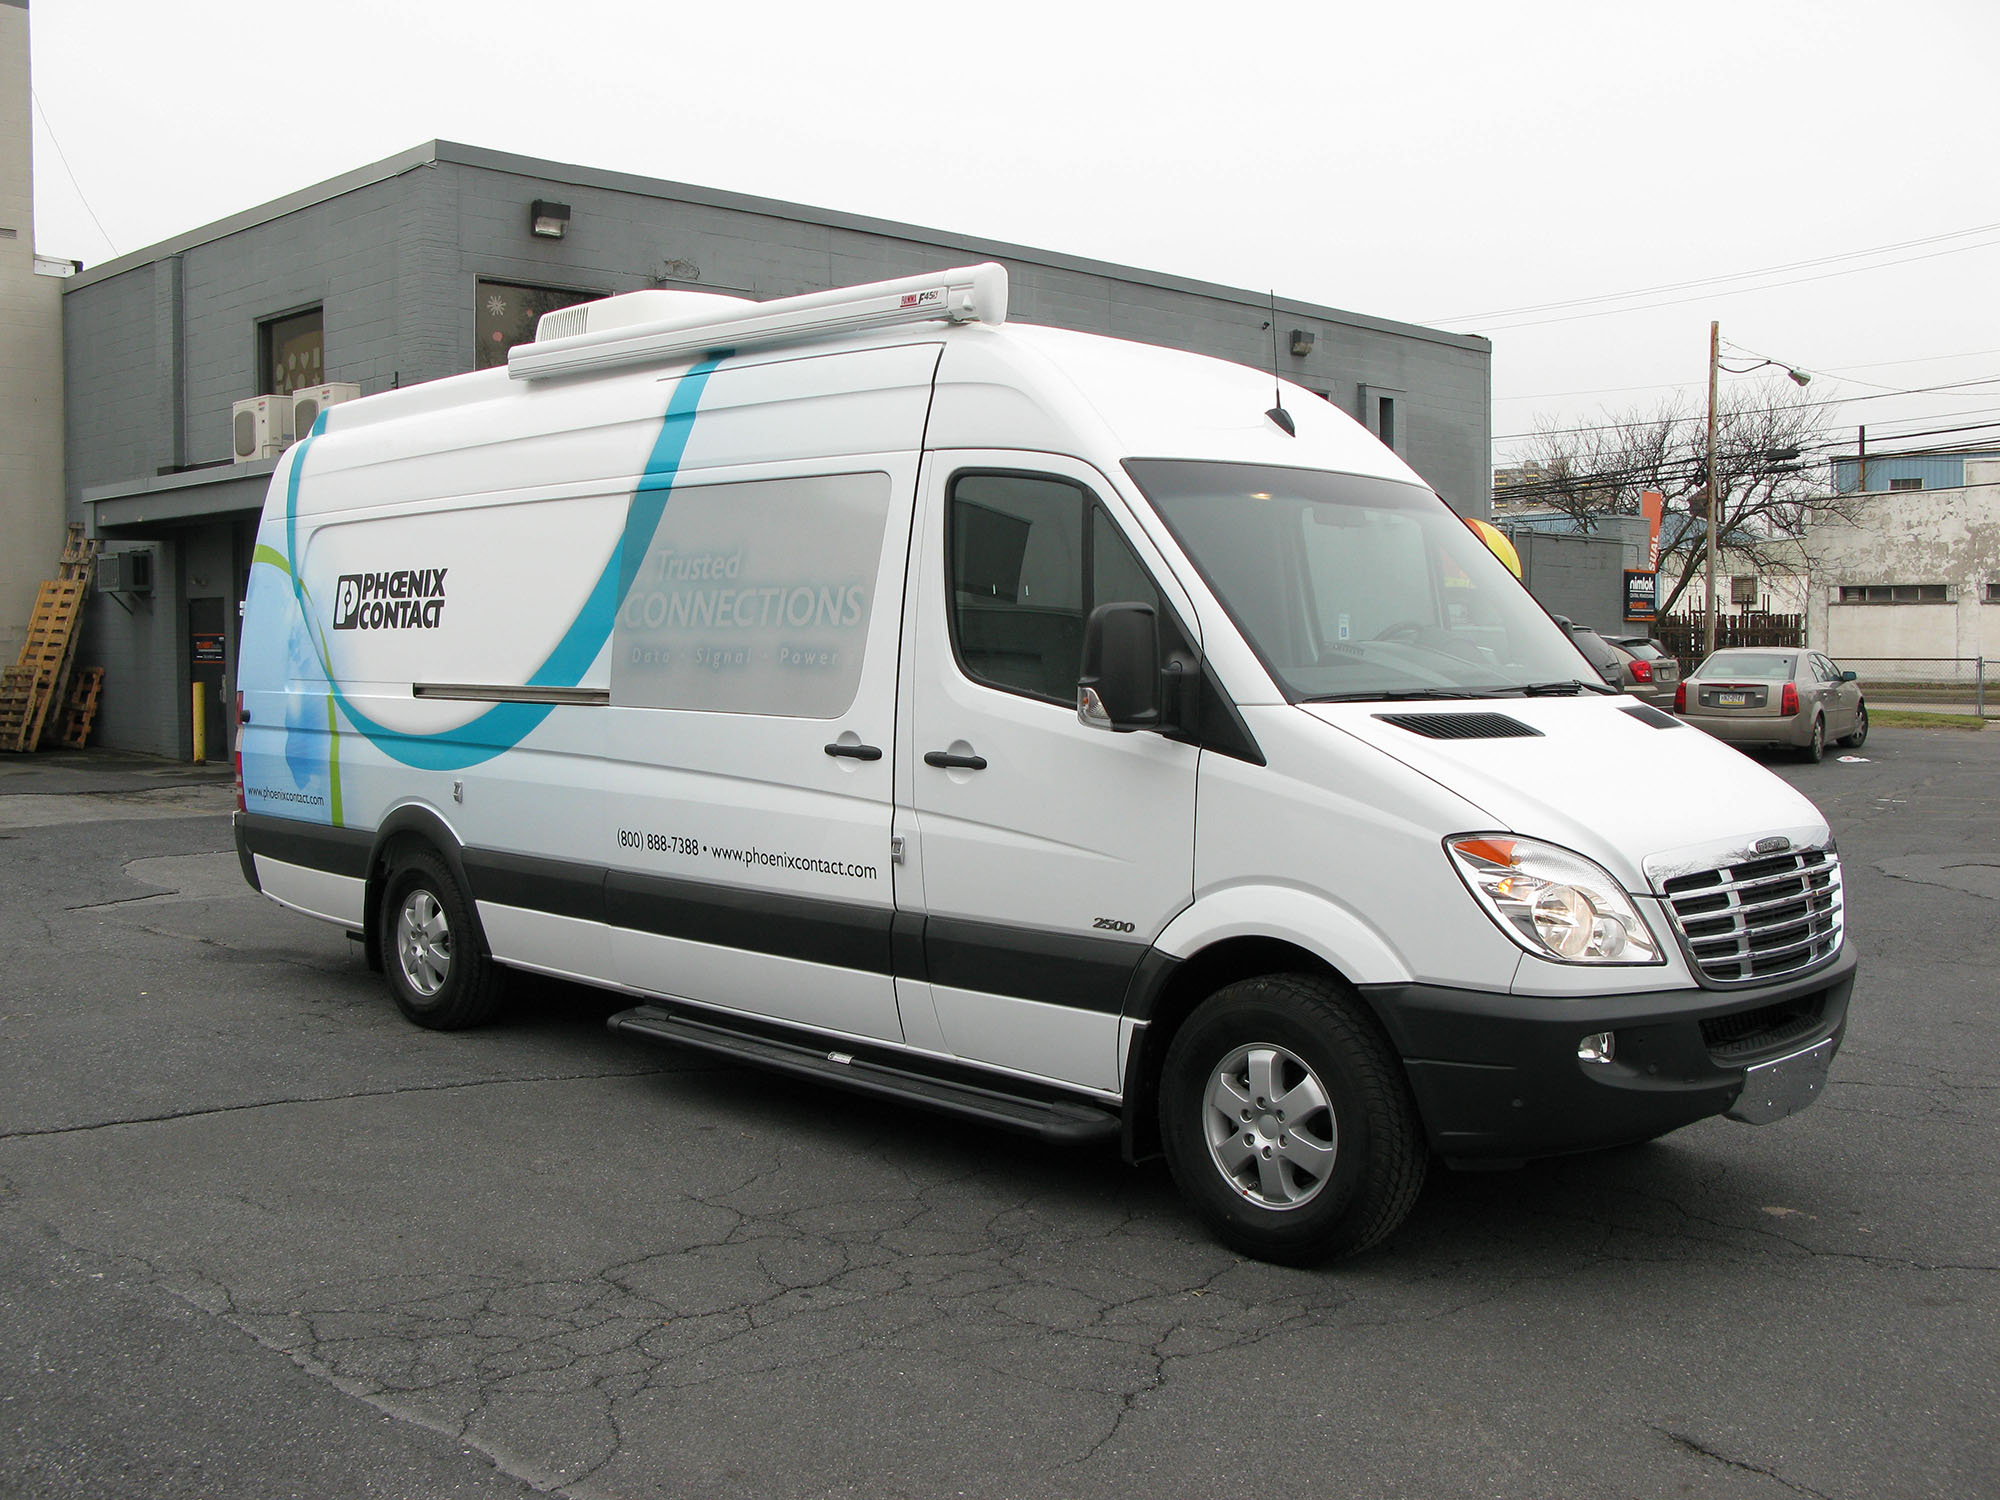 mobile marketing van